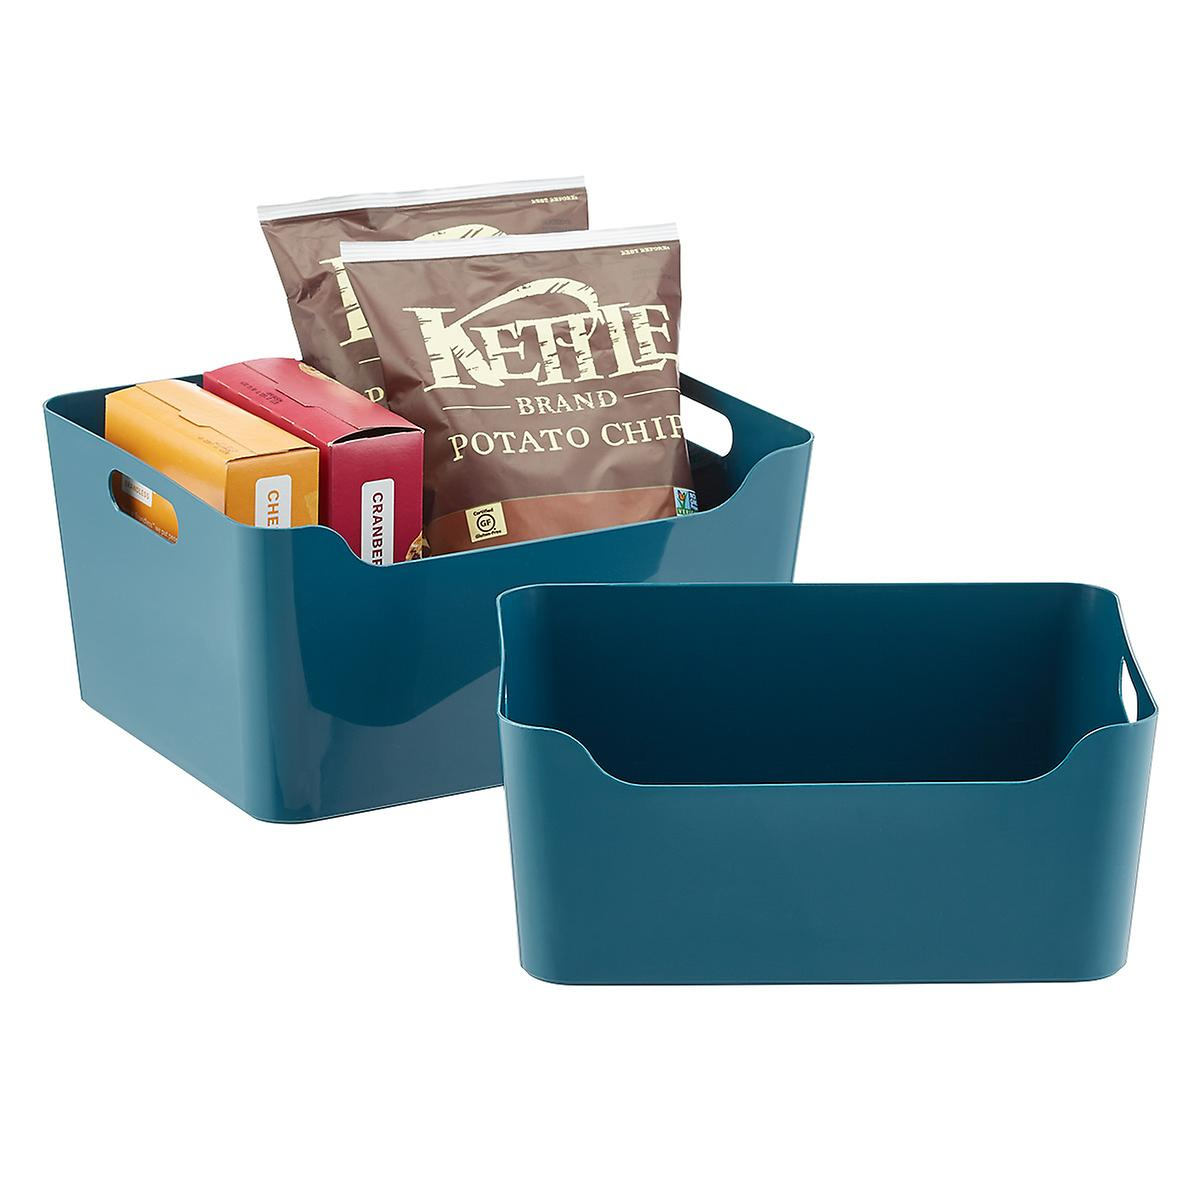 Teal Plastic Storage Bins with Handles